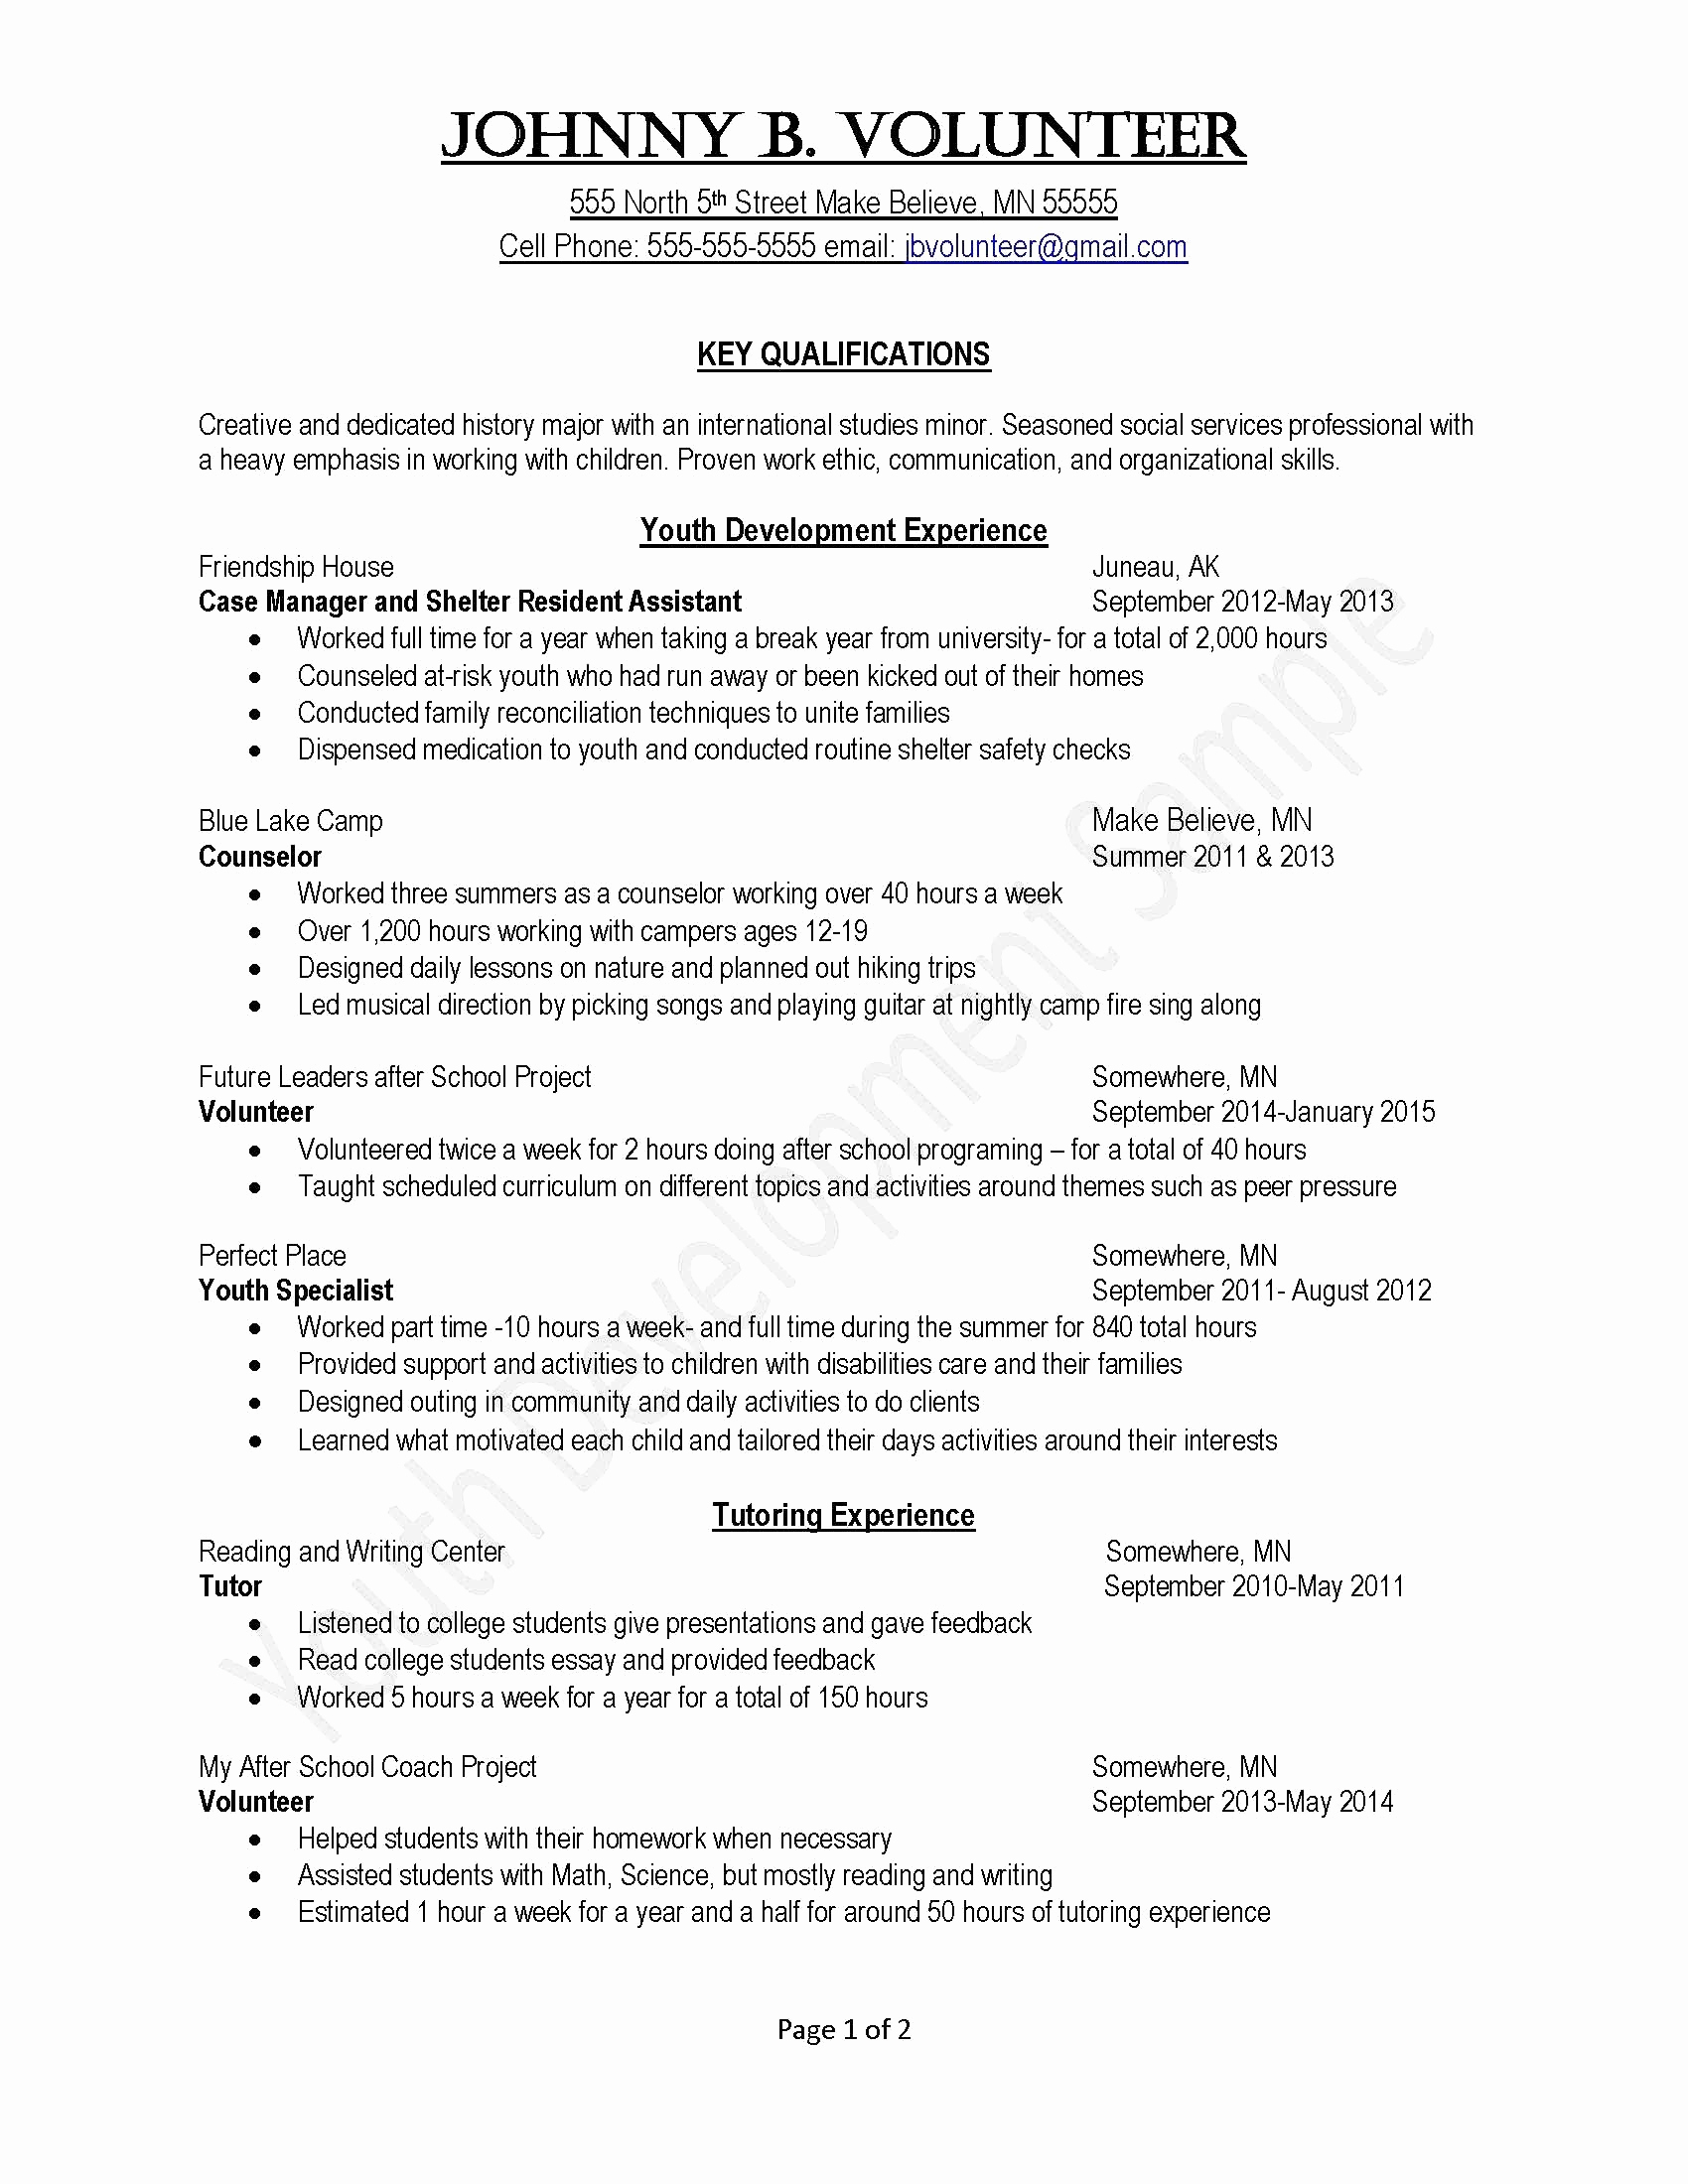 Volunteer Letter Template - Good Cover Letters for Jobs Unique Simple Cover Letter Template